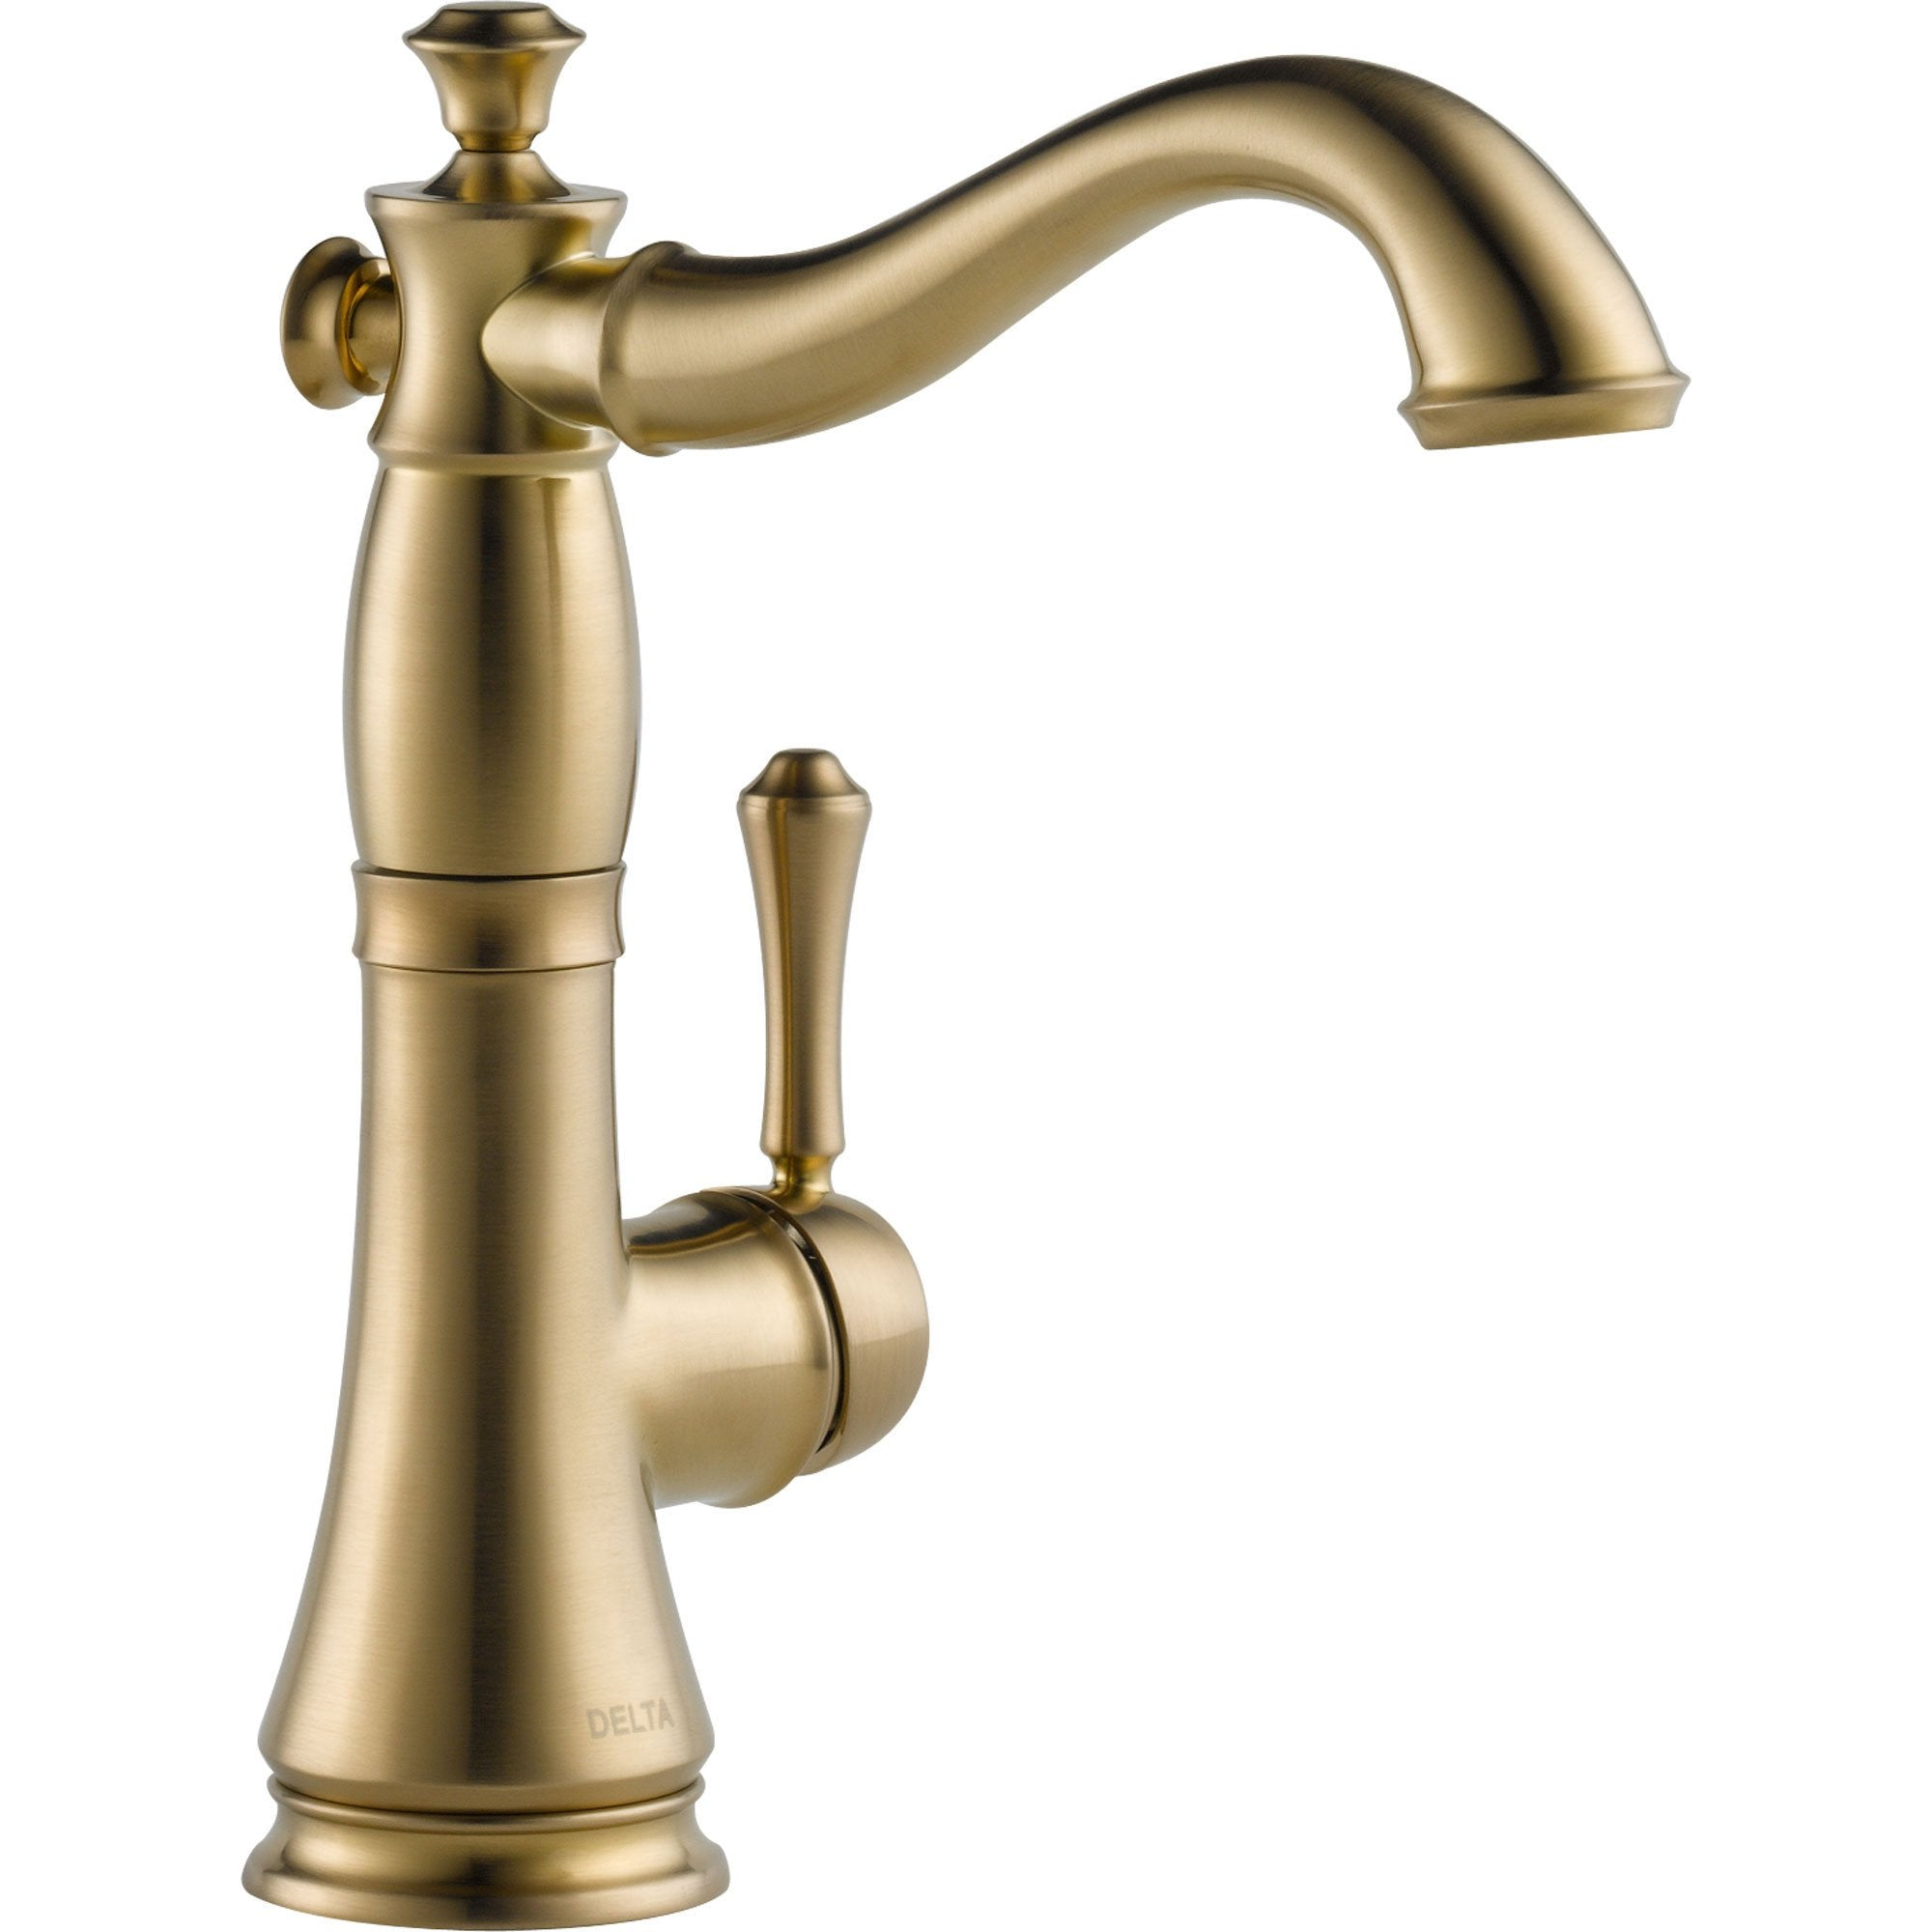 Delta Cassidy Champagne Bronze Single Hole 1 Handle Bar Faucet